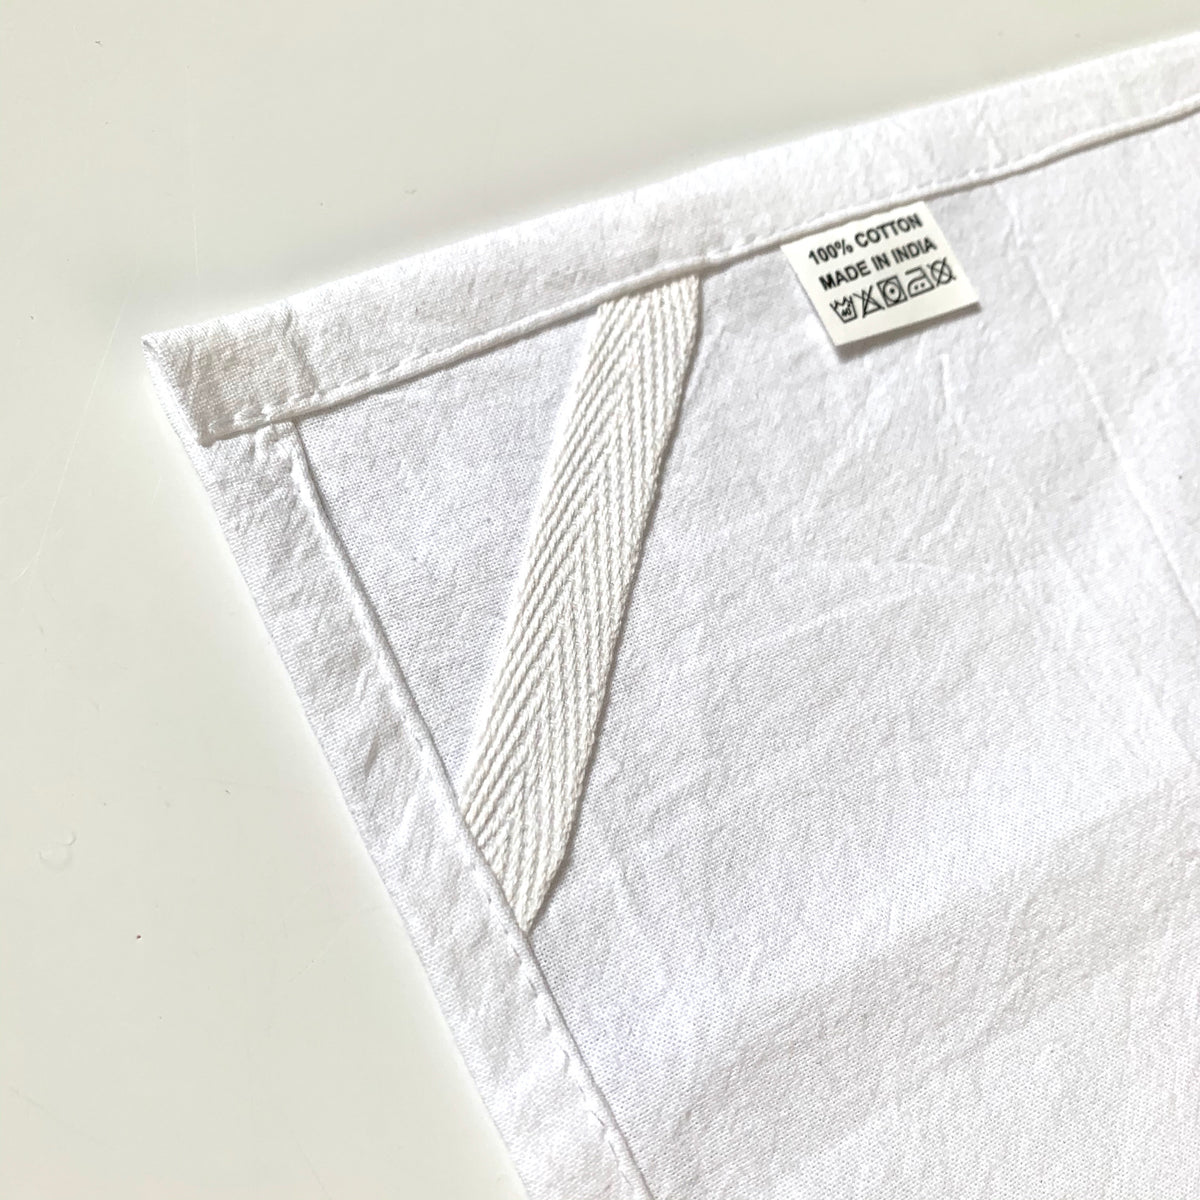 Muddy Mouth Cards Towel— This Towel is Moist